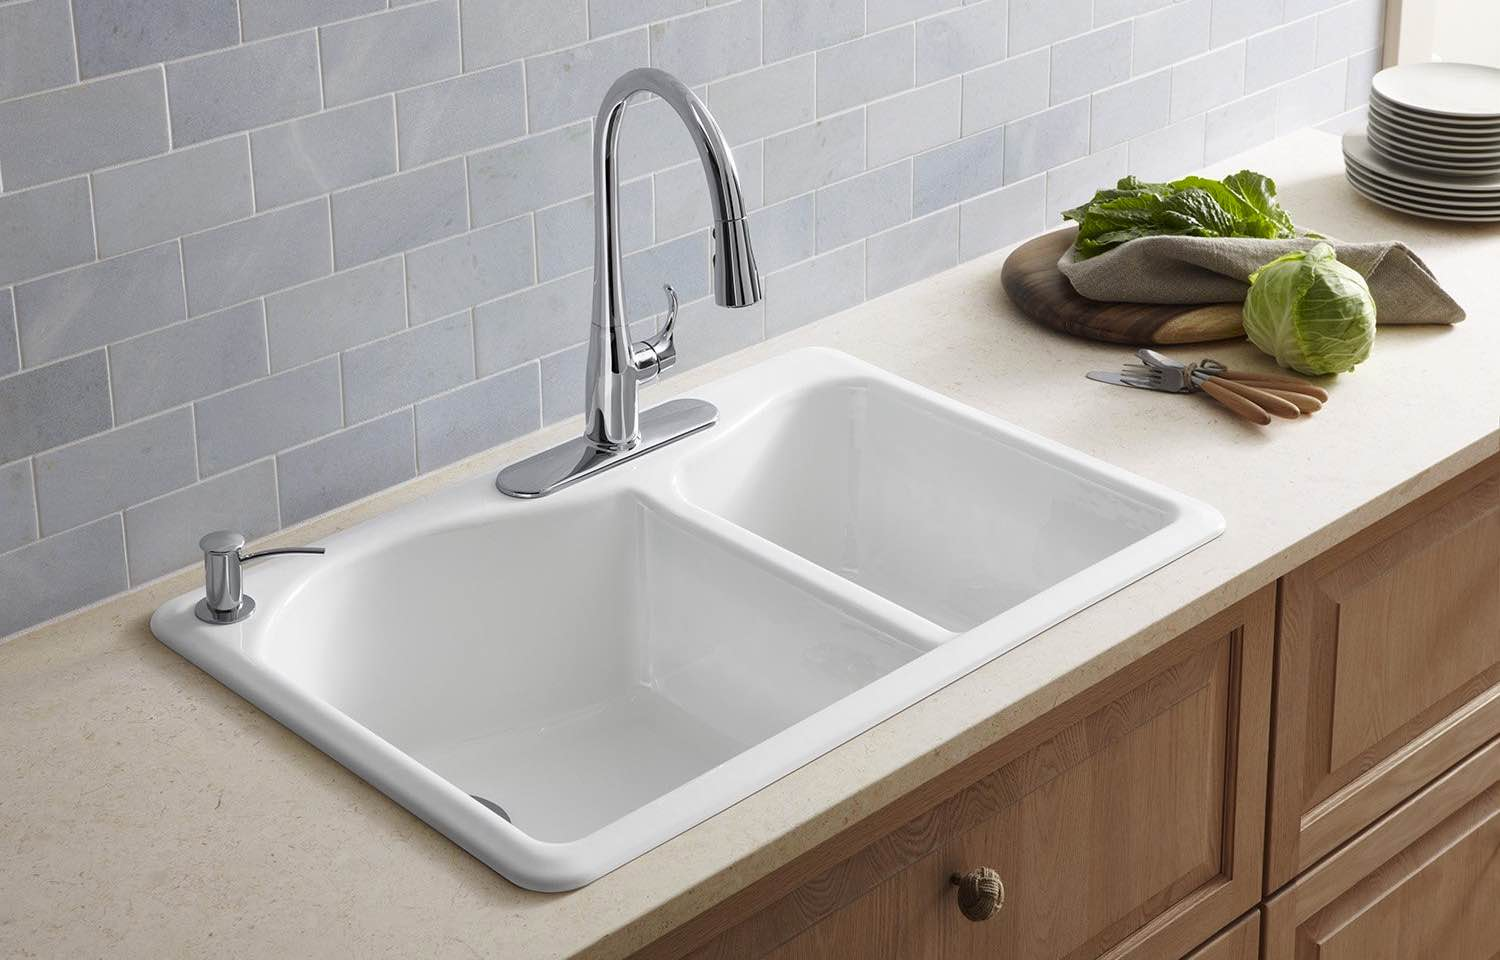 Cast Iron Sinks Buyer's Guide Guide +Design Ideas & Pictures